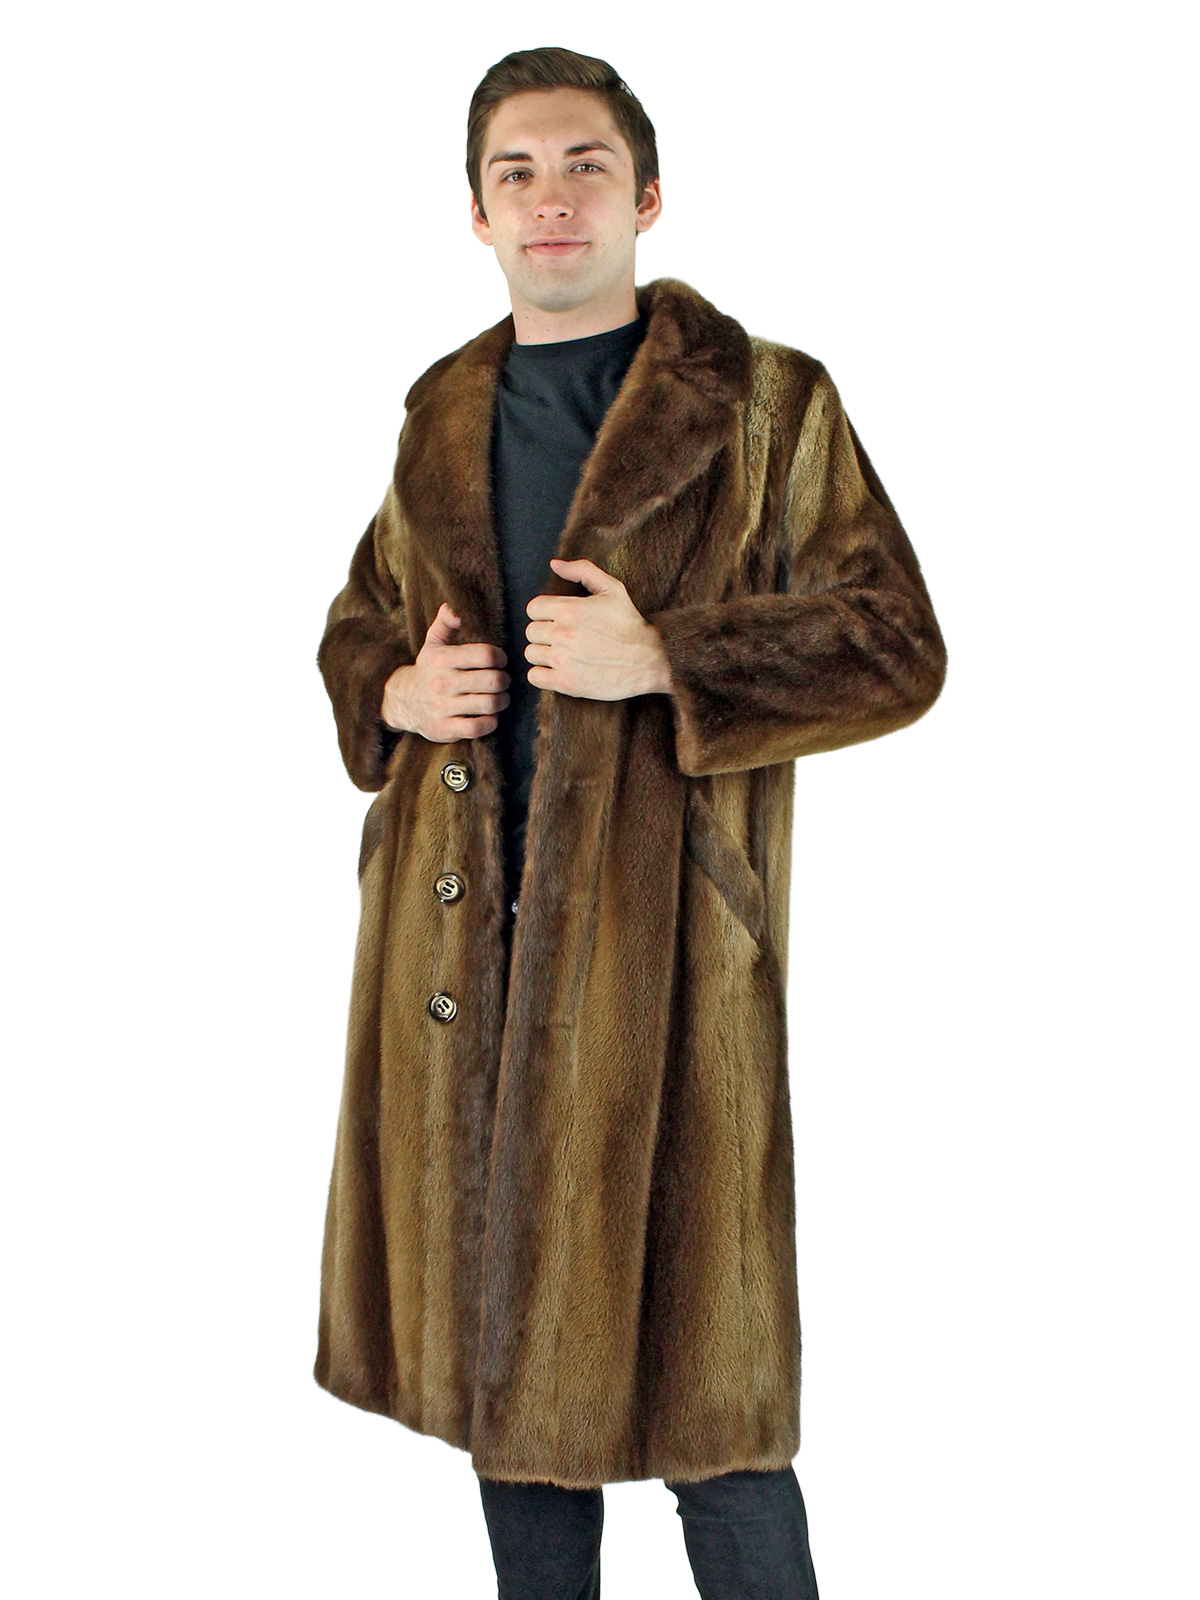 Man's Natural Otter Fur Coat